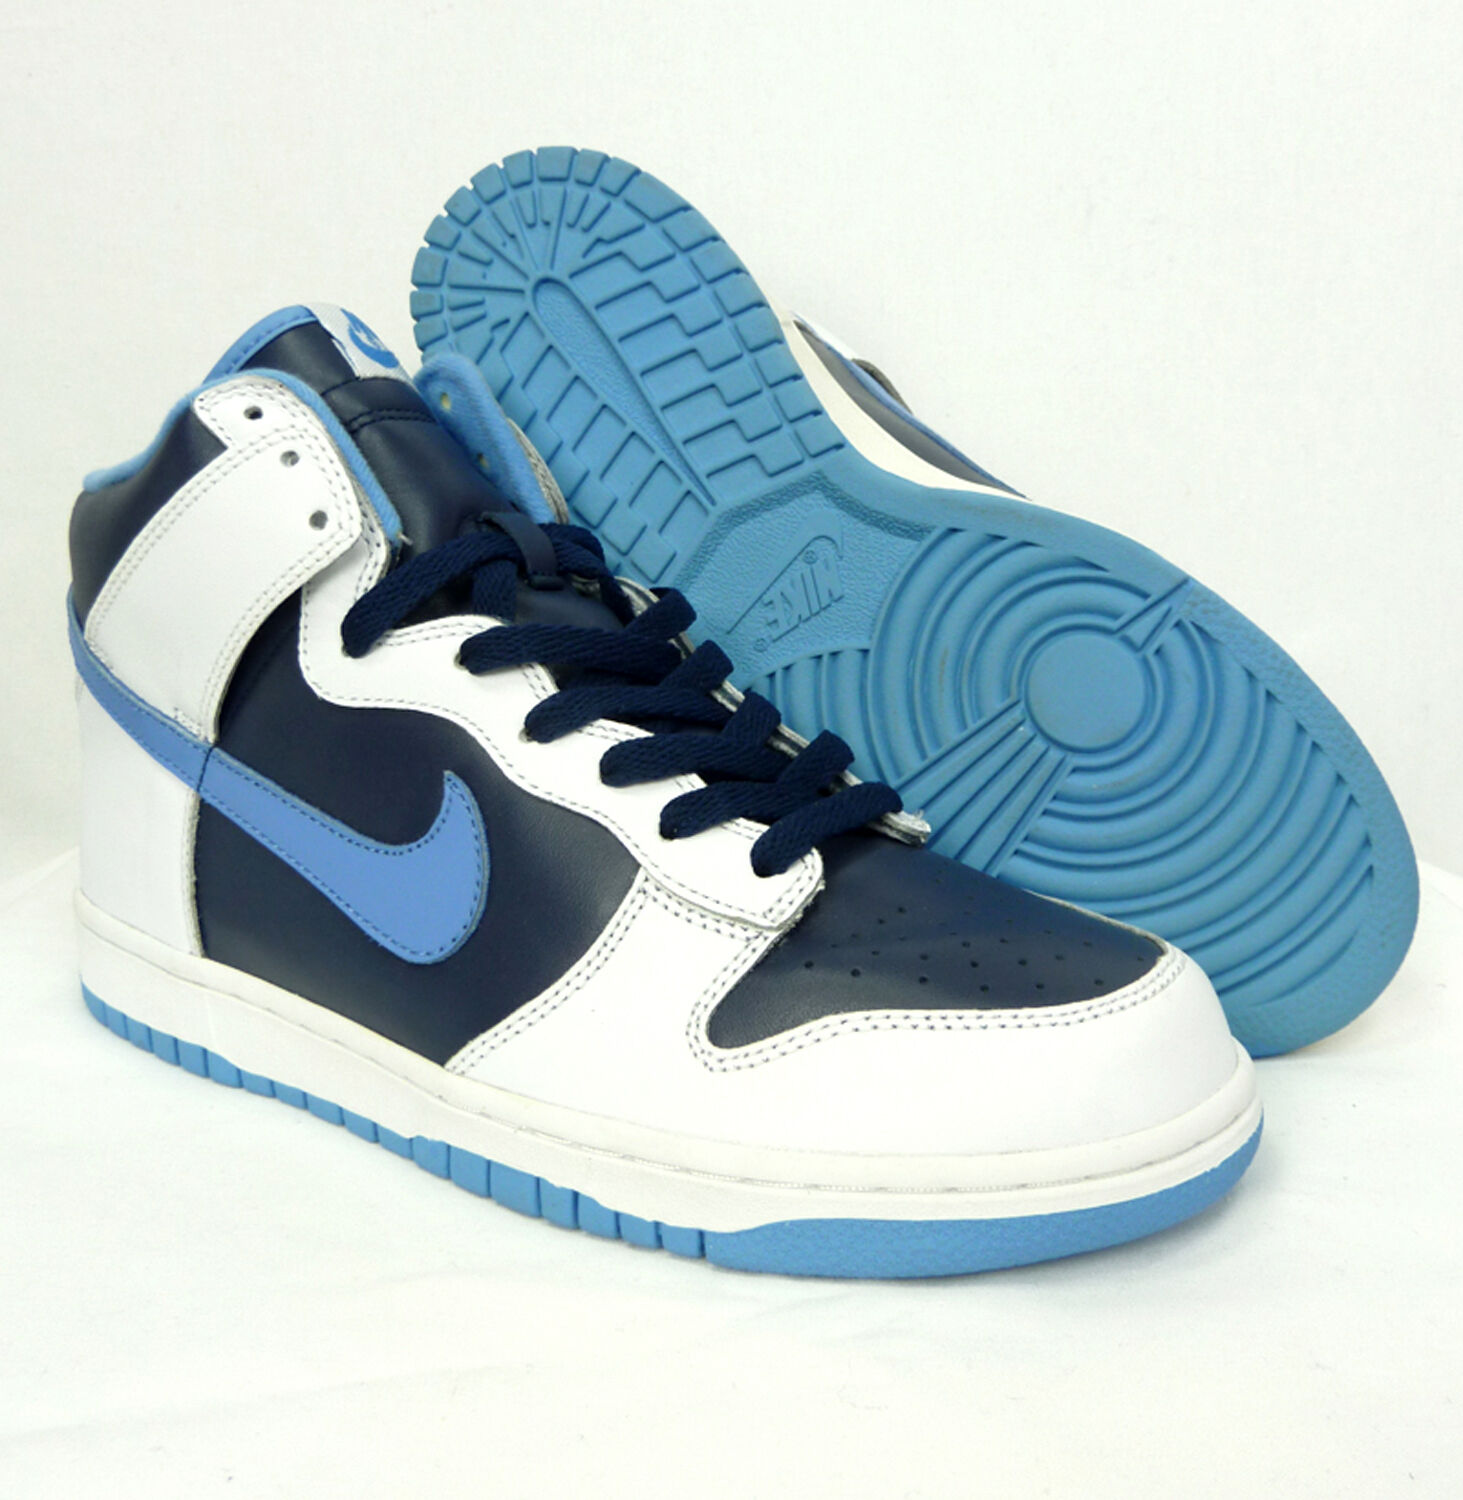 NEW WITH BOX NIKE DUNK HIGH HI SNEAKERS LIMITED EDITION DEADSTOCK SIZE 9 US